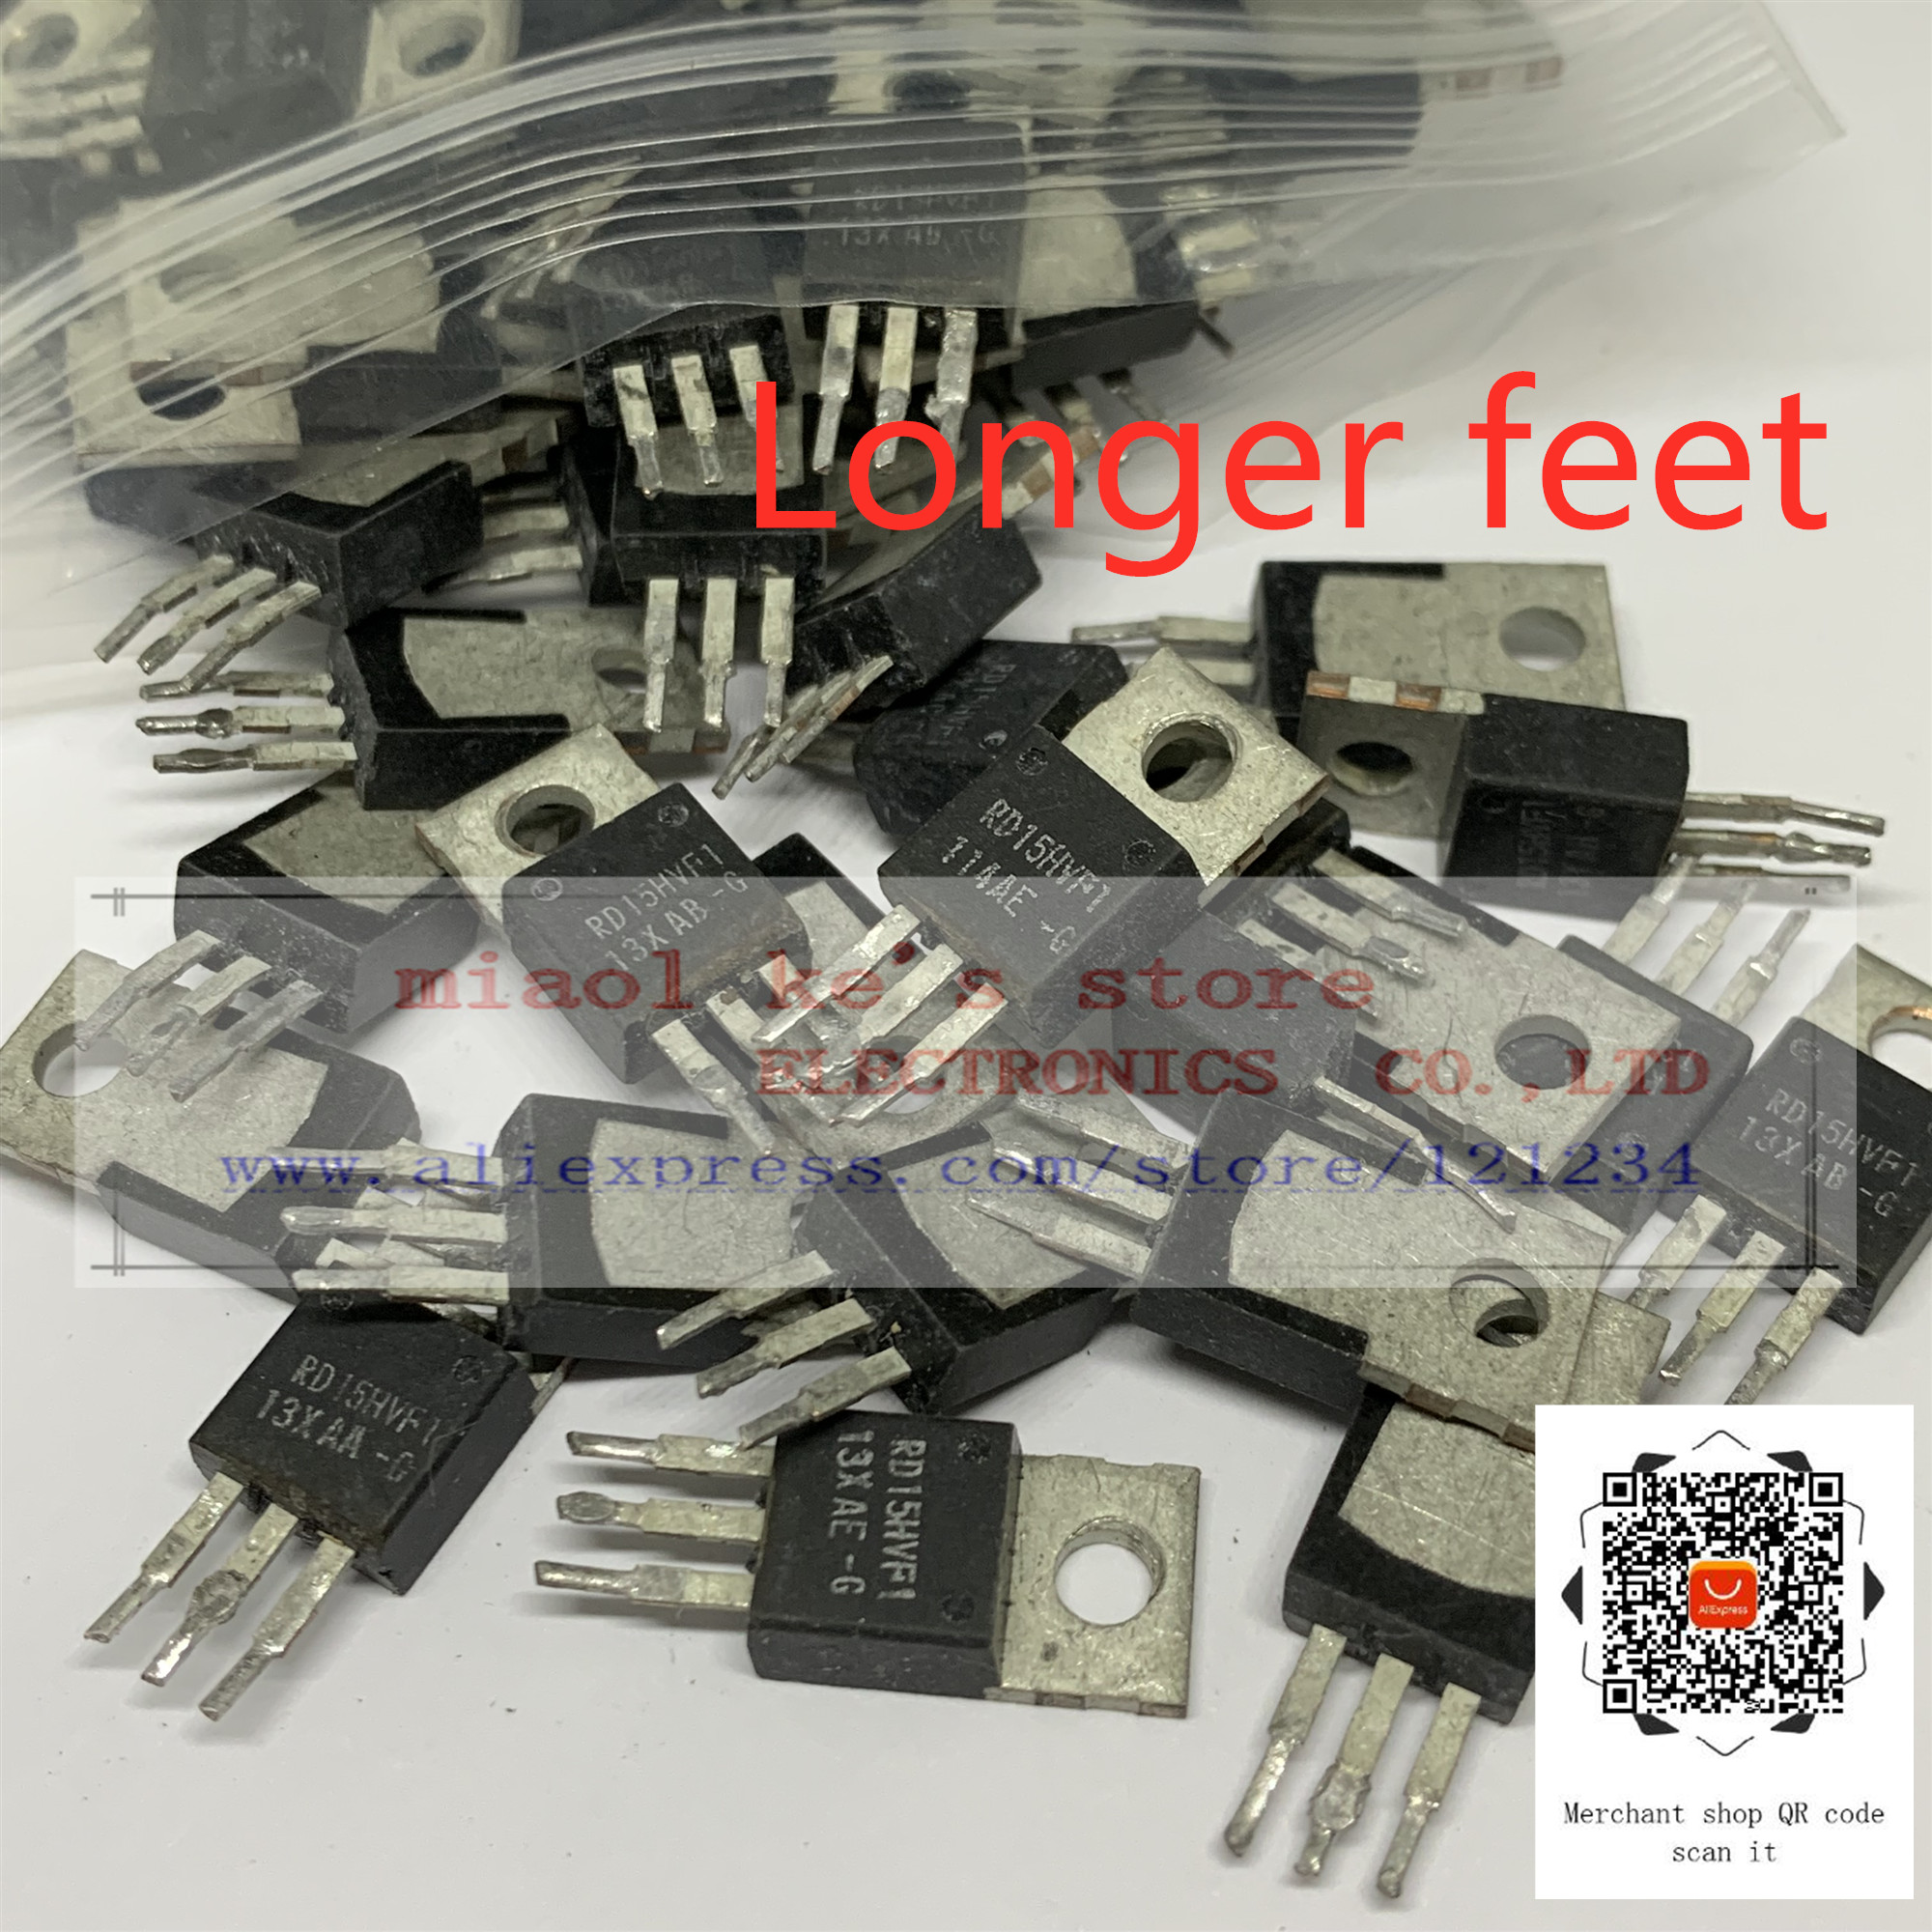 [ Used Goods ]; RD15HVF1 RD15HVF1-101[5pcs/1lot] - [ 175MHz 520MHz, 5W Replaced 2SC1972 ] Longer Foot Or Short Foot . Stock